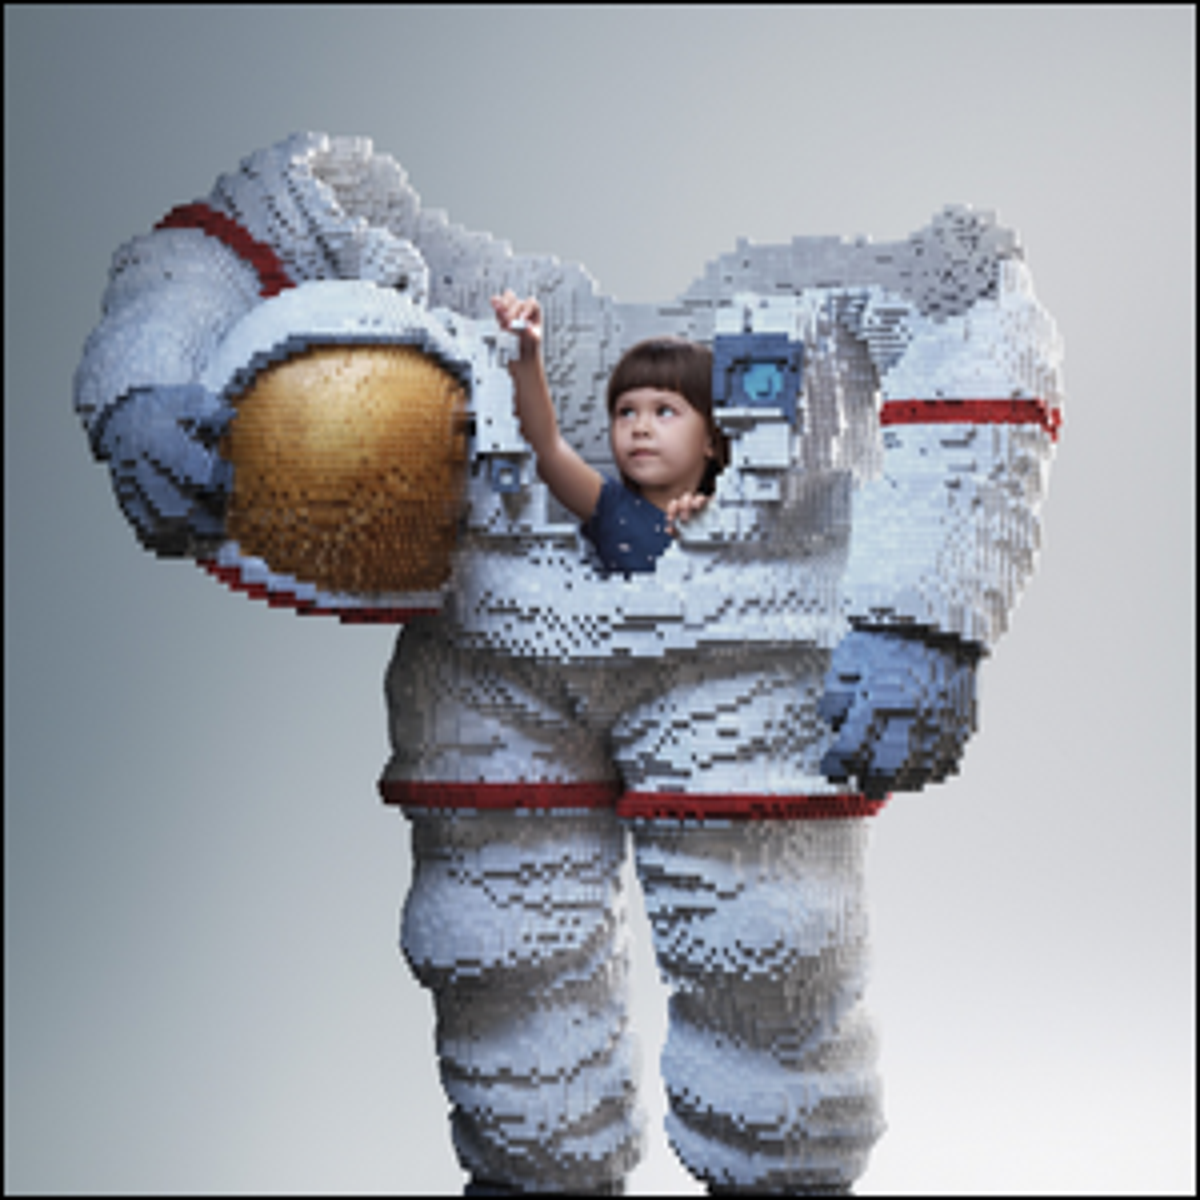 The 2018 Gold Clio Award winning ad created for a LEGO campaign.